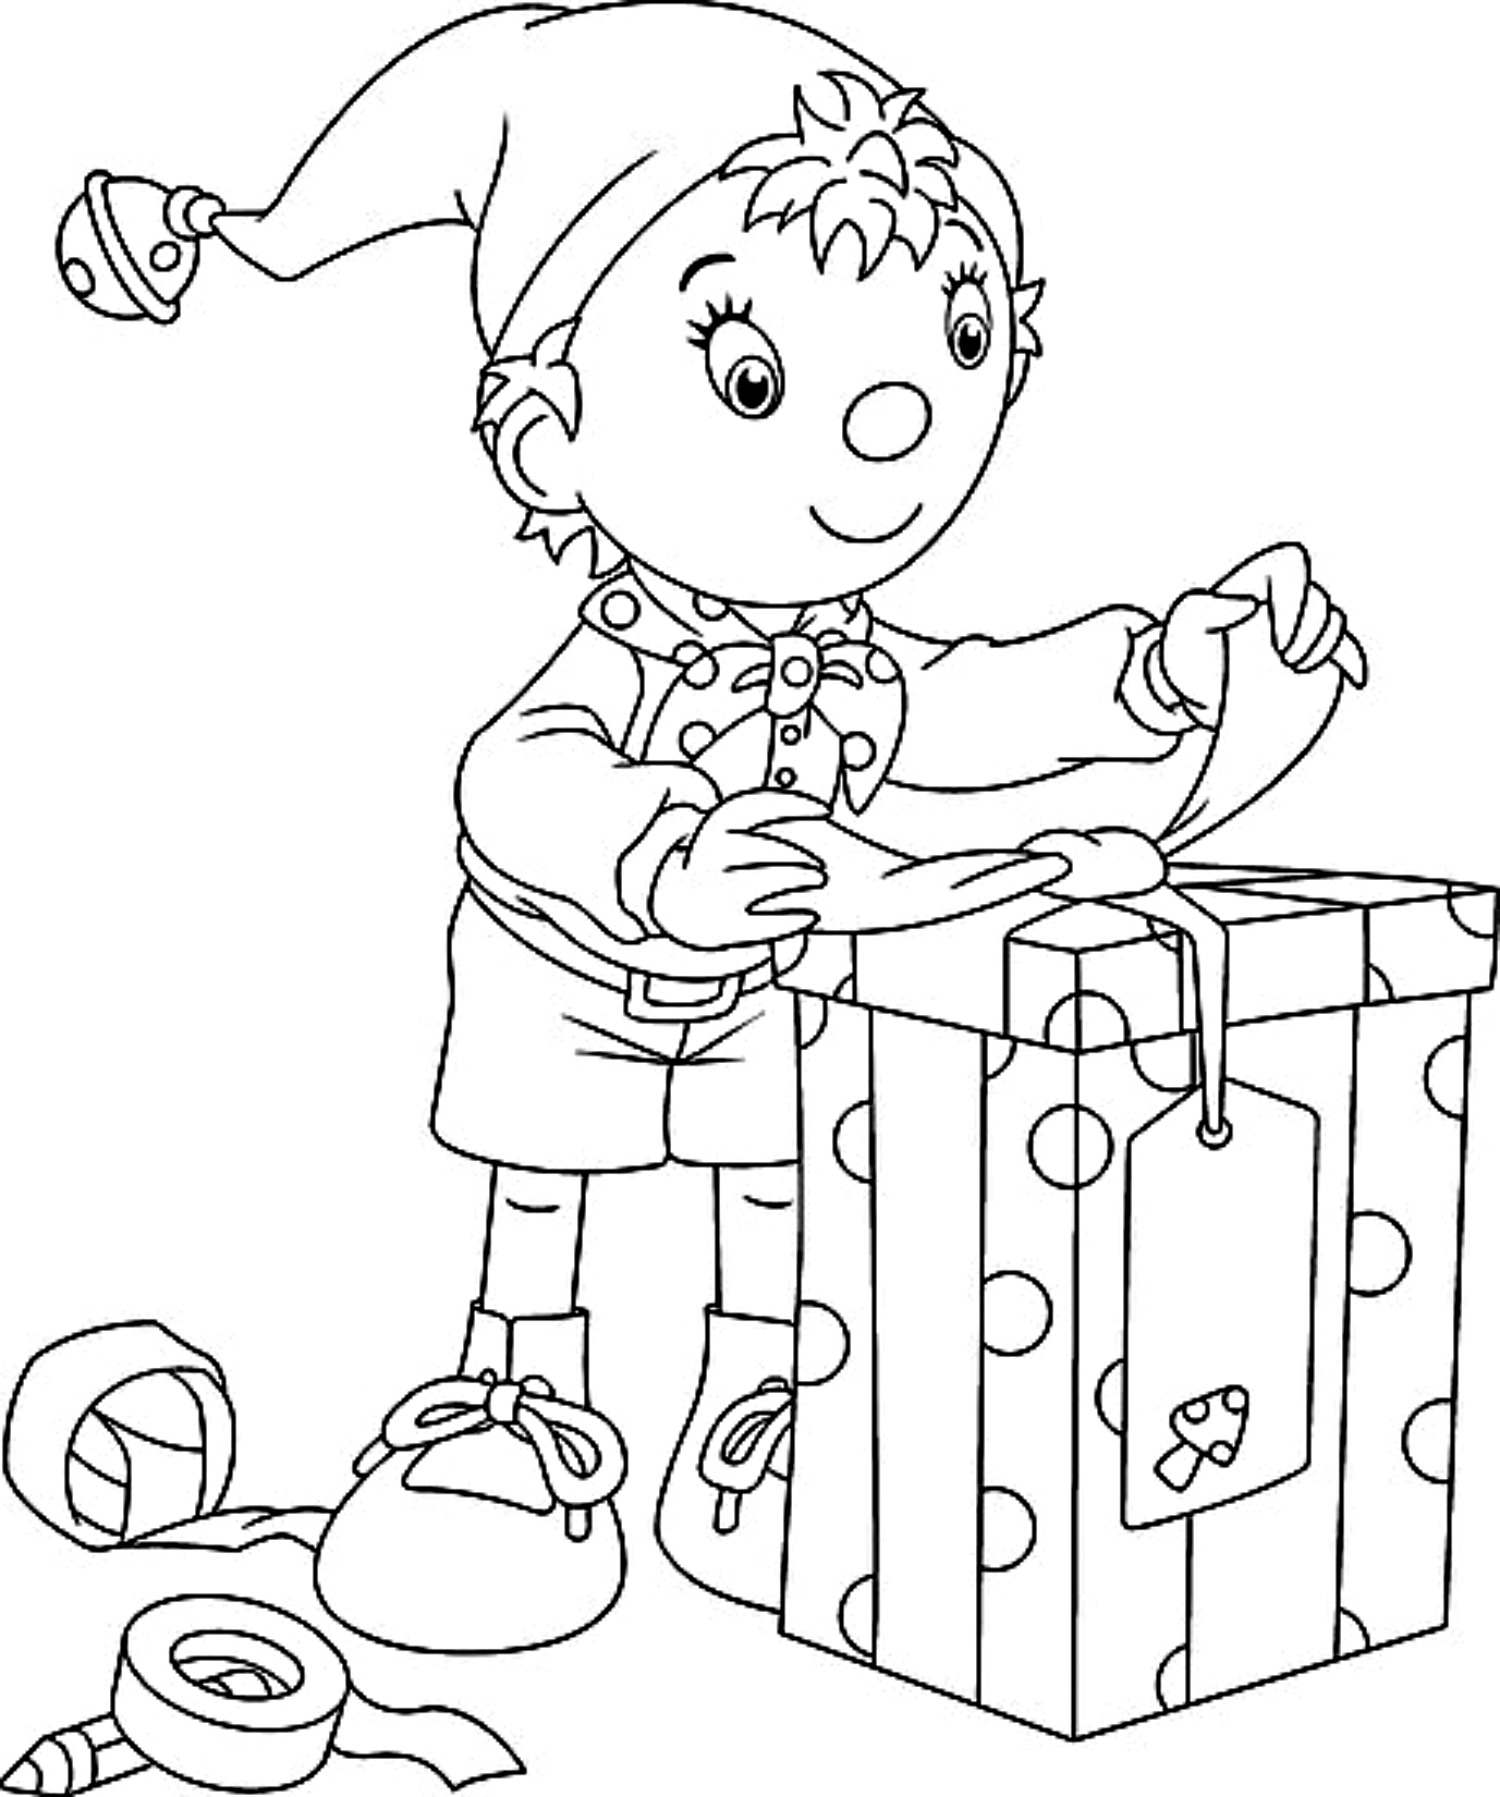 Free Printable Nursery Rhymes Coloring Pages For Kids Nursery Coloring Pages